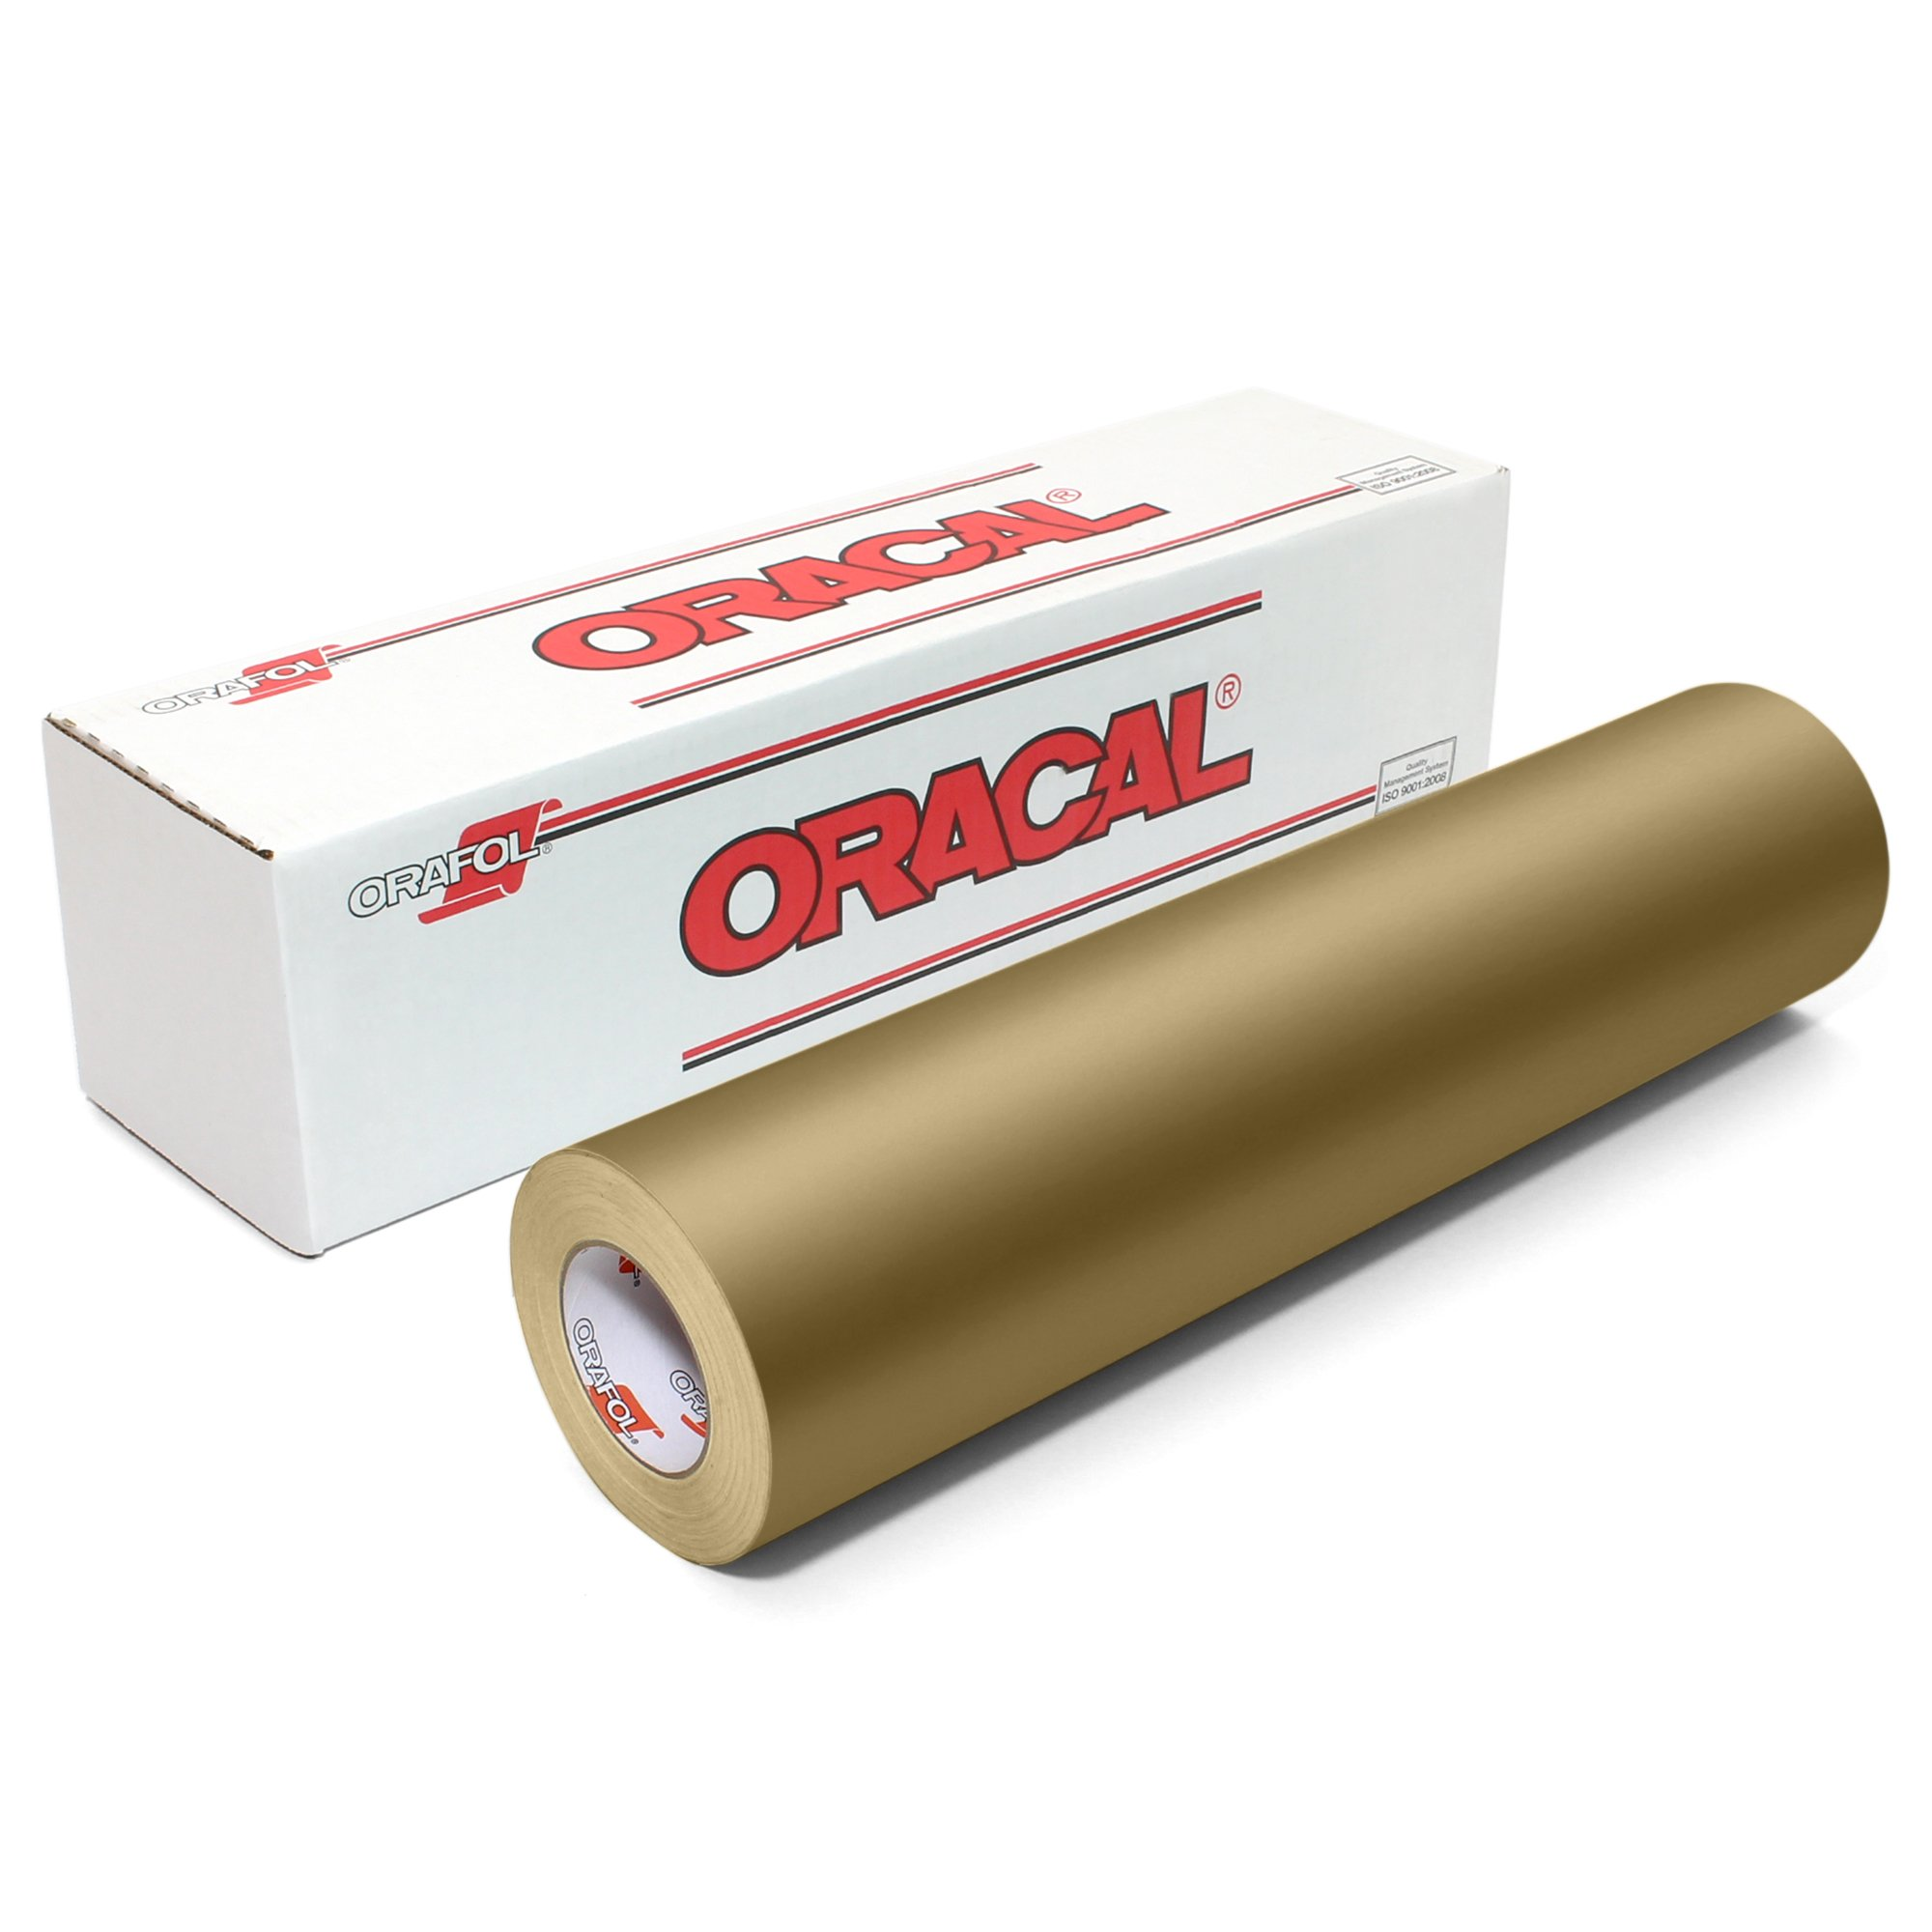 Oracal 631 Matte Vinyl Roll 24 Inches by 150 Feet - Metallic Gold by ORACAL